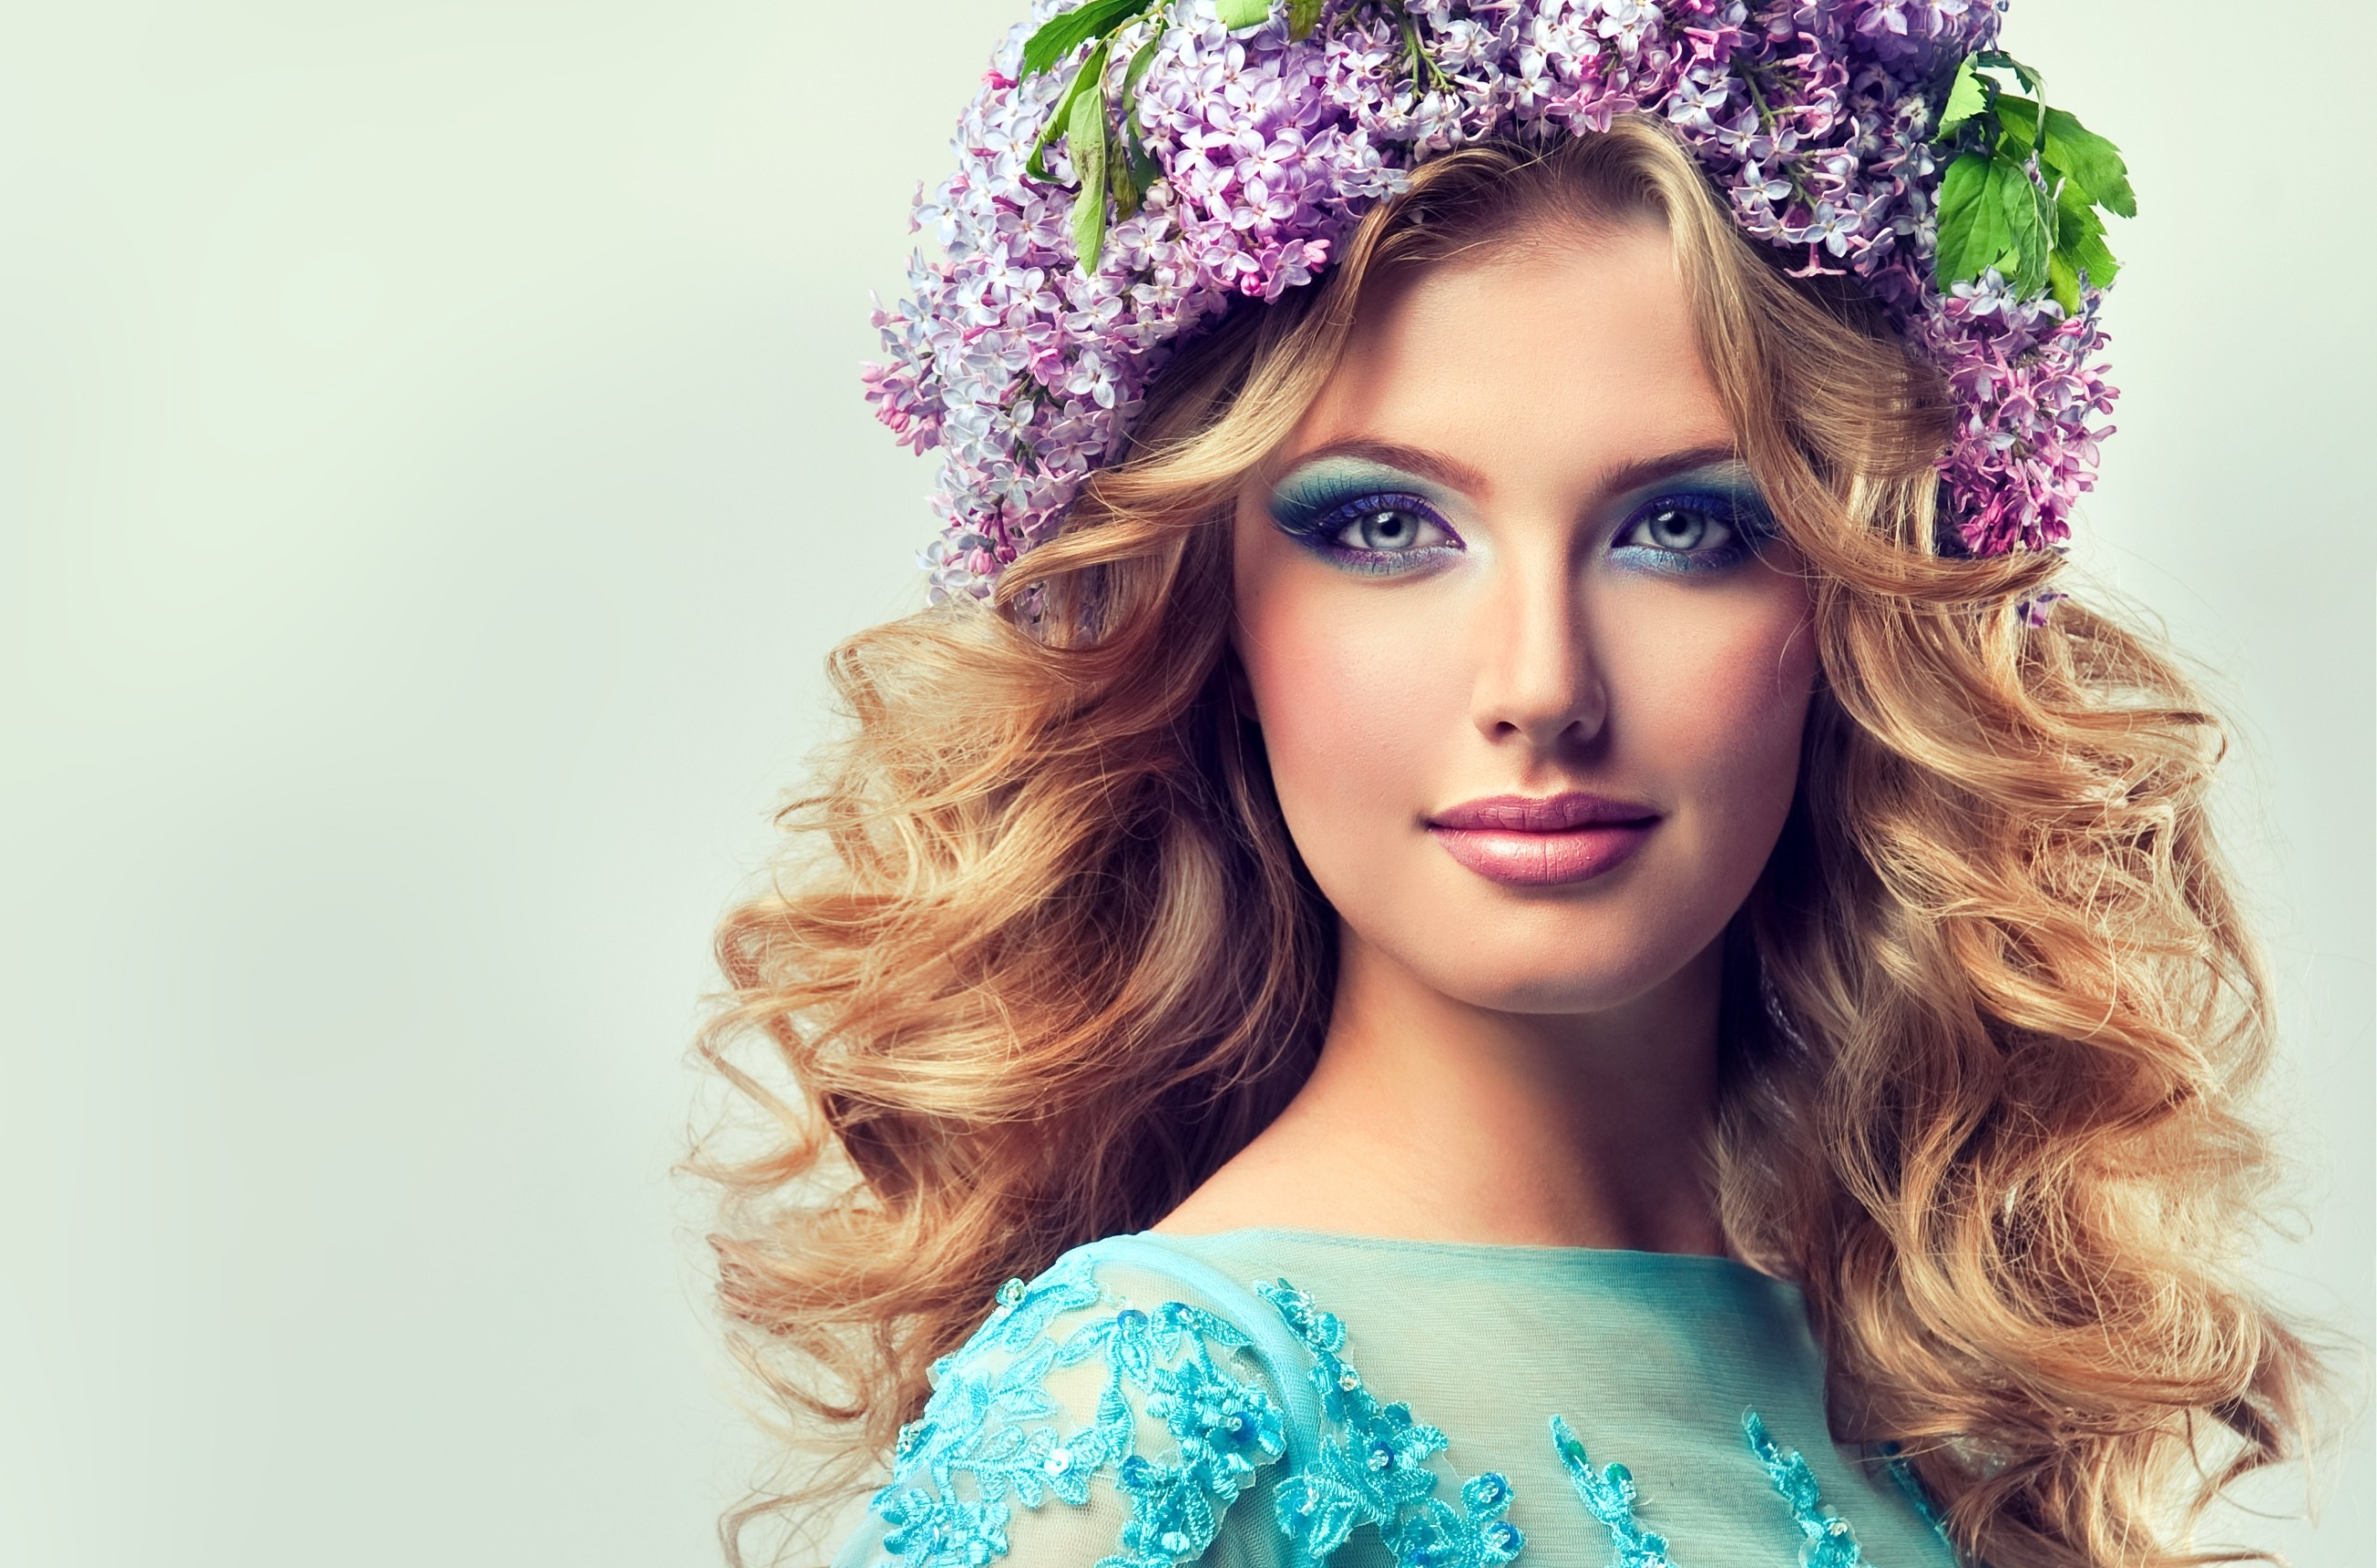 Beautiful model of flowers lilac with curly long hair hd wallpaper wallpapers id527172 izmirmasajfo